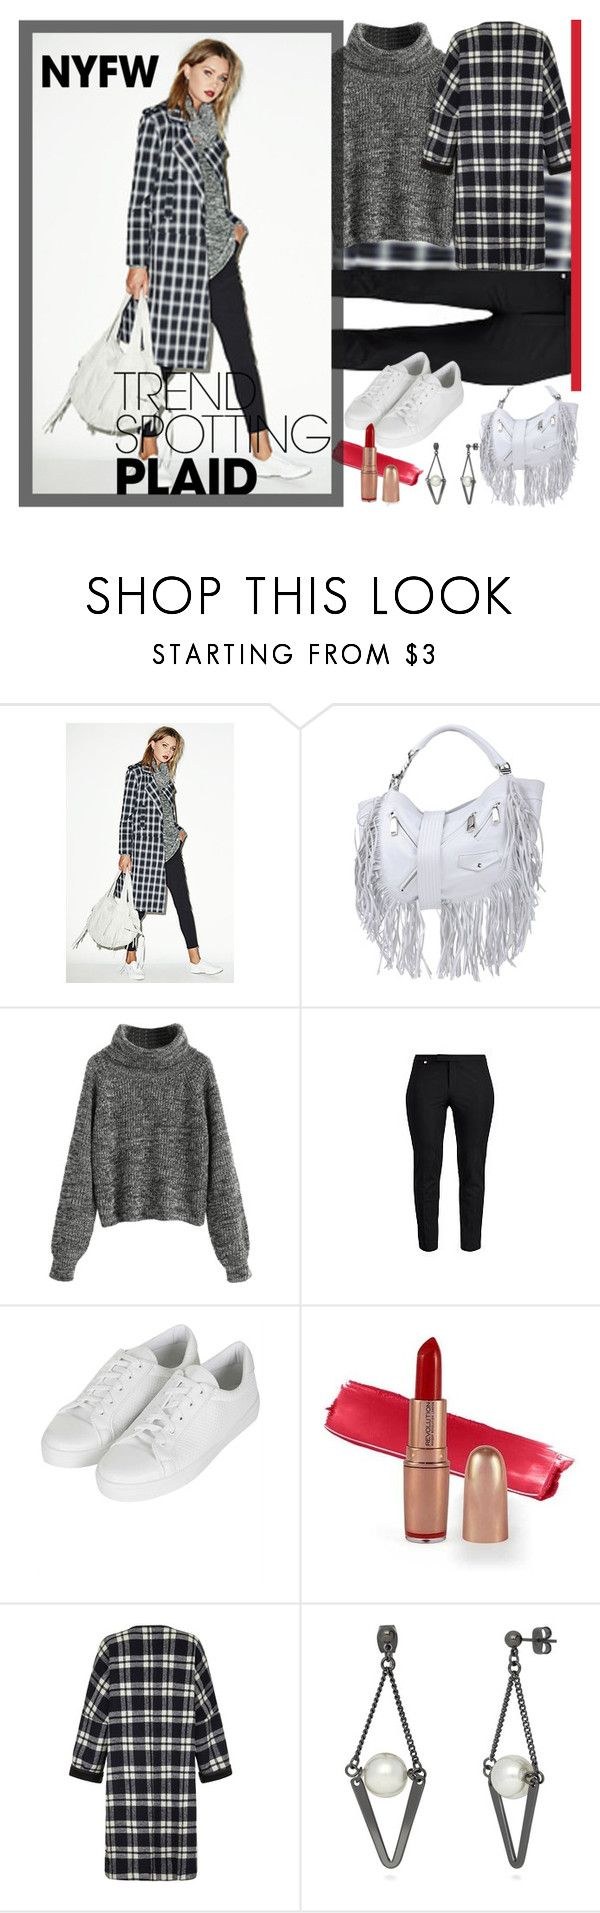 """""""#Remember2016#"""" by ann-kelley14 ❤ liked on Polyvore featuring Dsquared2, Ralph Lauren, Topshop, Parka London, BERRICLE, contestentry and NYFWPlaid"""